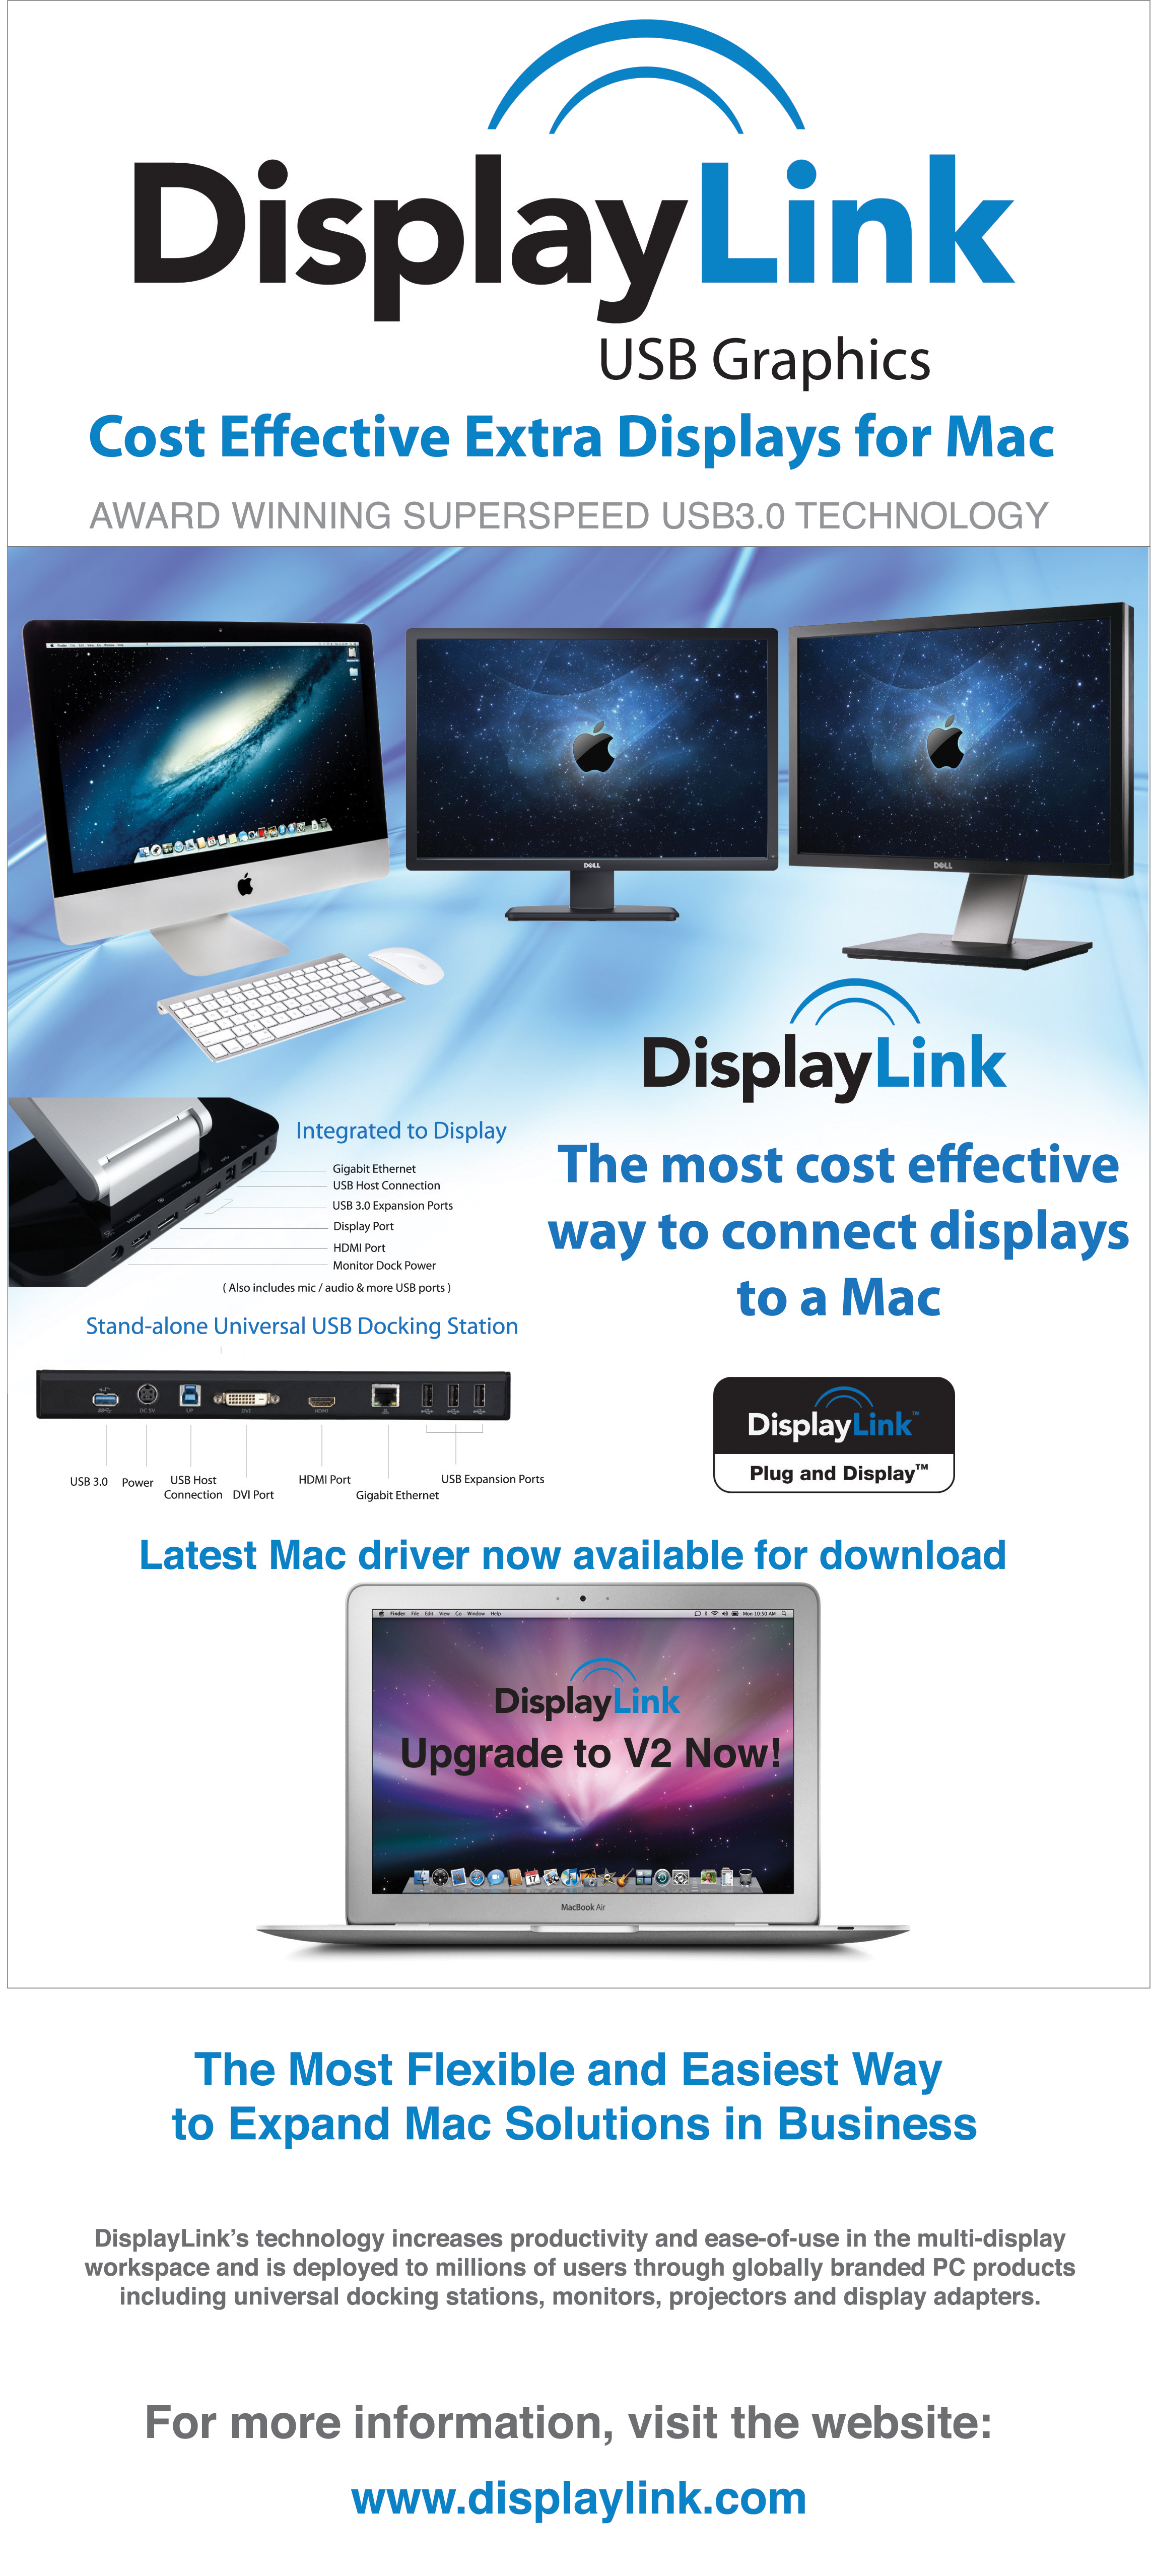 DisplayLink Launches New MAC OSX Driver for USB Docking